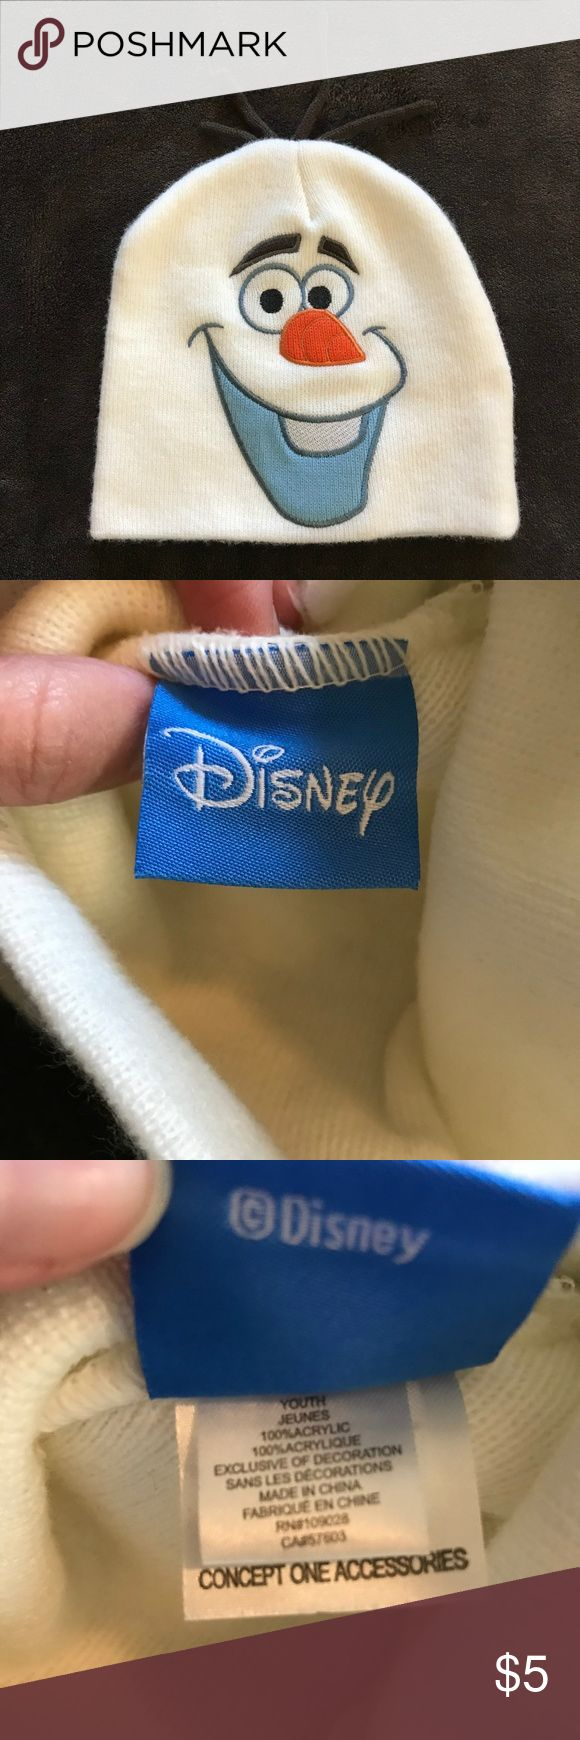 """Olaf from Frozen Disney Kids Beanie Hat Snow Good old smiling Olaf the snowman from Frozen (Disney) beanie knit hat for kids.  Size just says """"Youth"""" - this will most likely fit kids from age 5-10 the best.  Very good pre-owned condition. Disney Accessories Hats"""